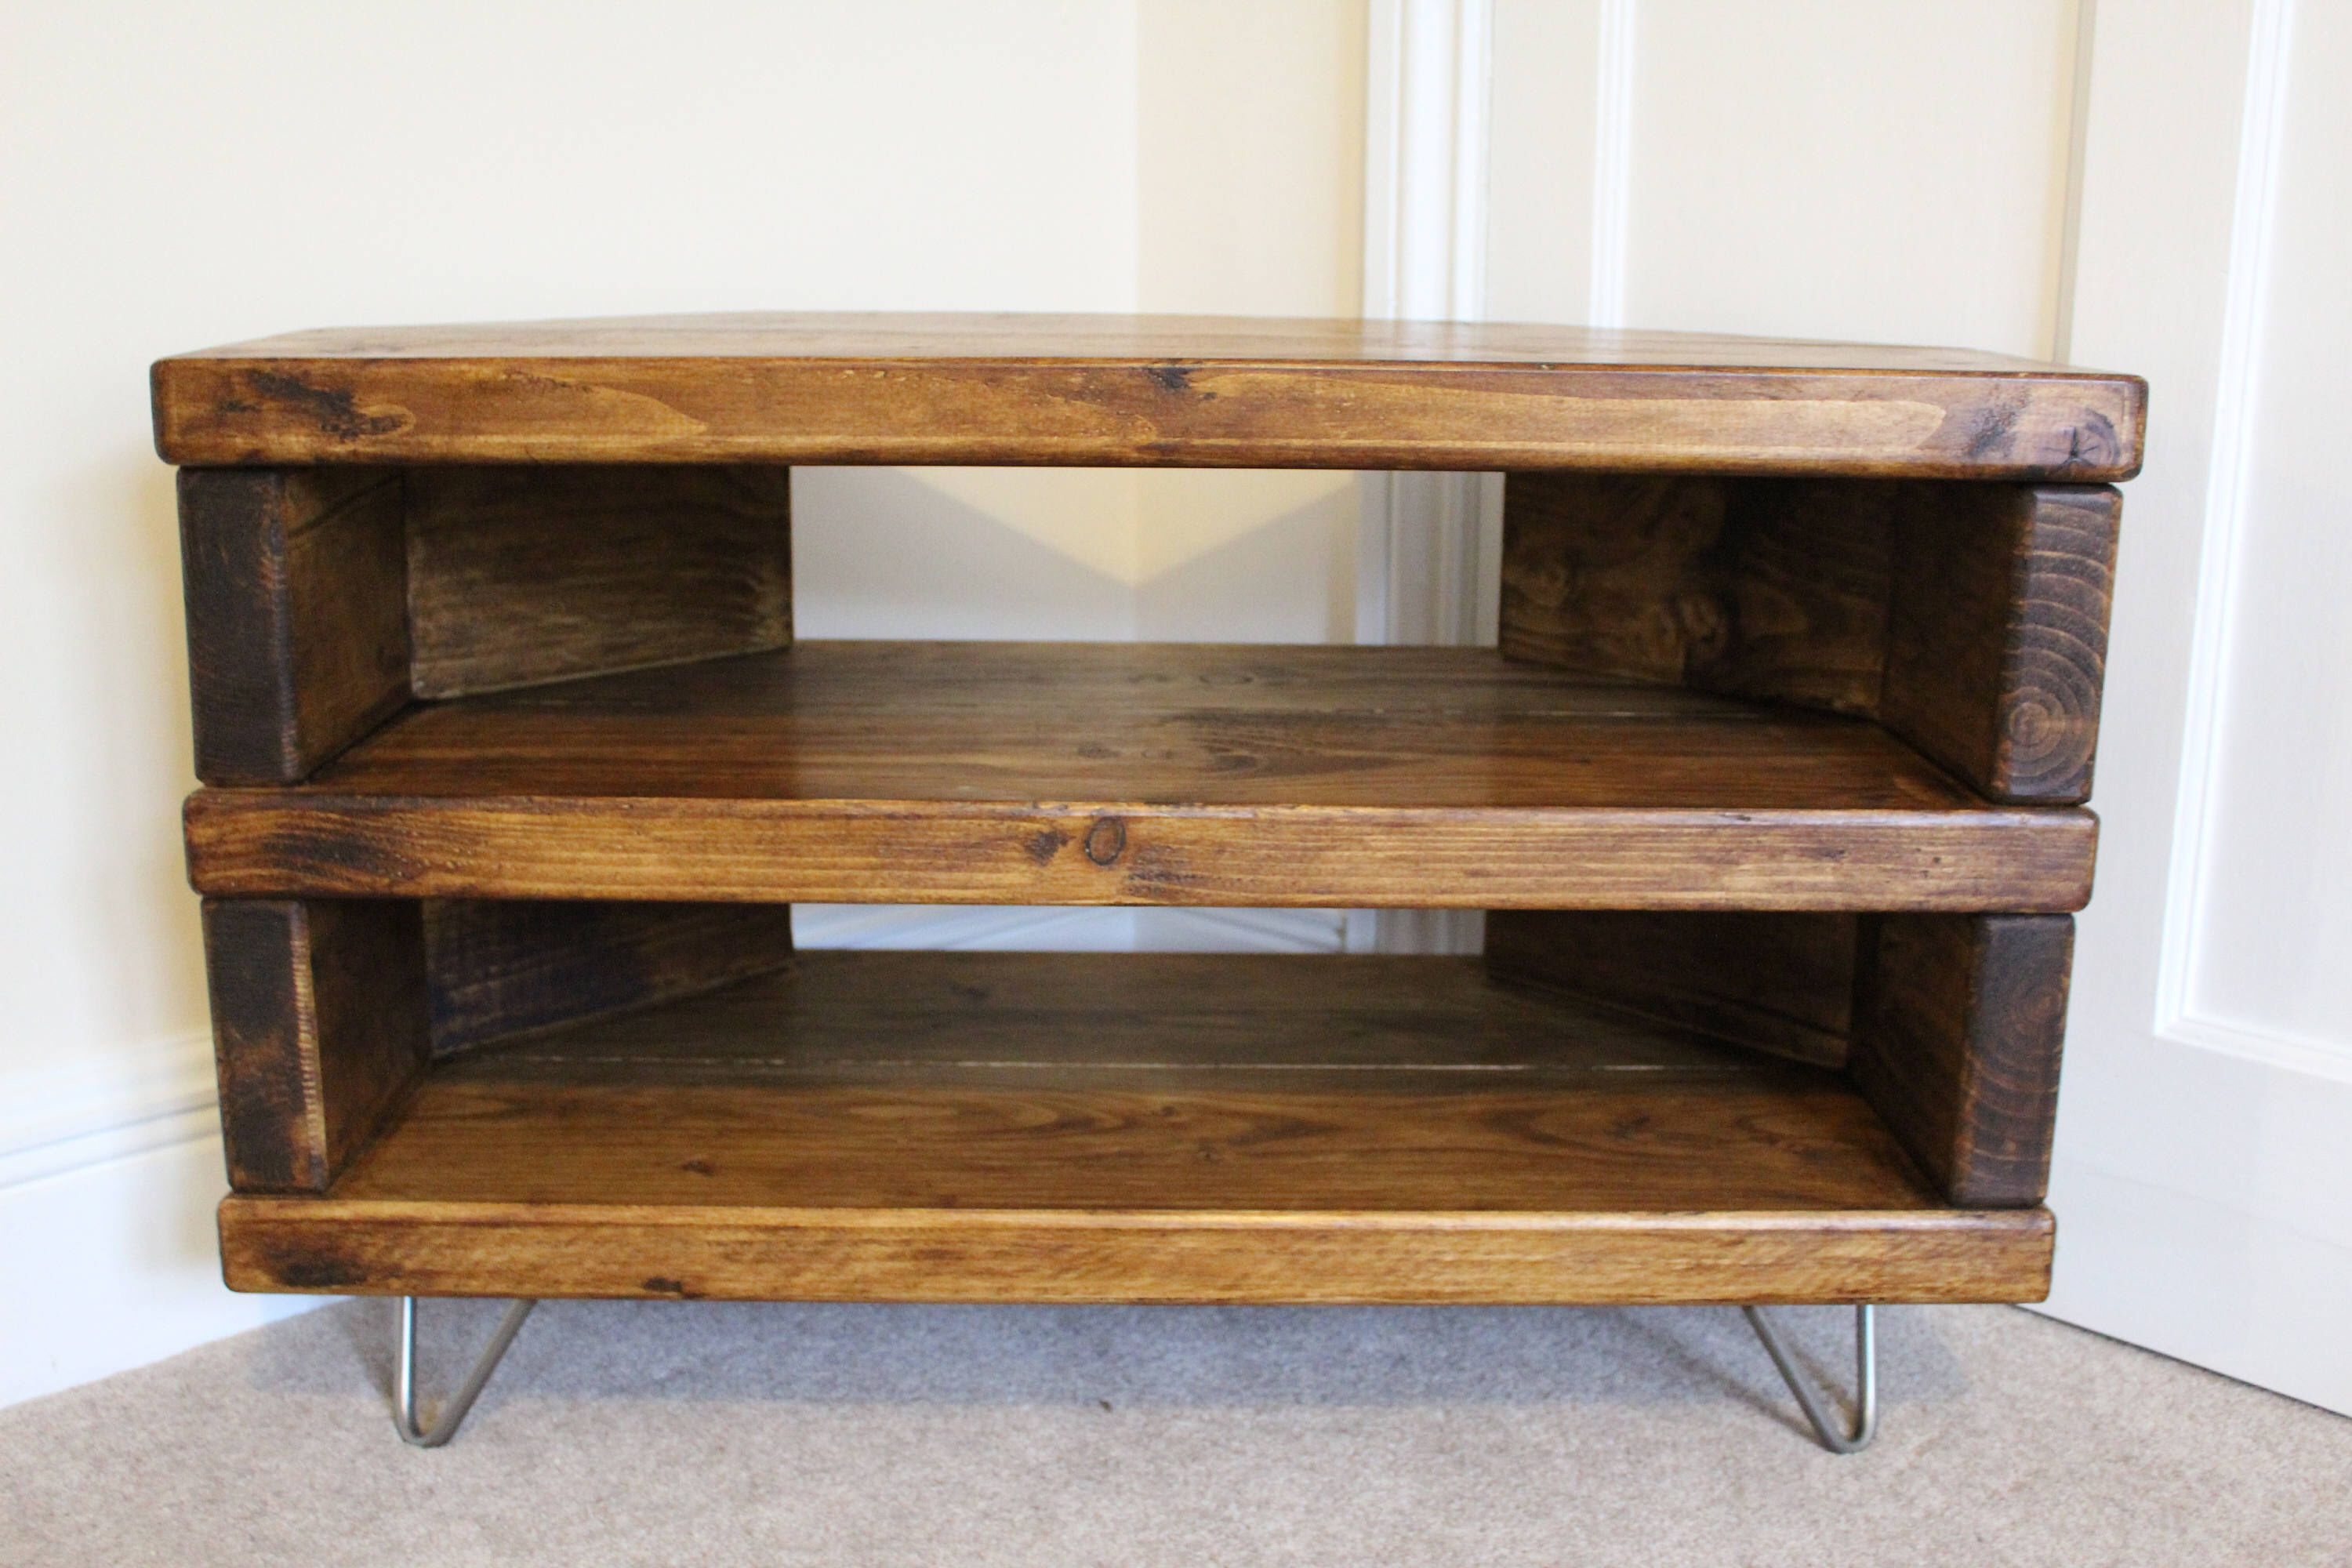 reputable site c6a35 0c4c5 Reclaimed rustic wooden corner tv stand cabinet unit solid ...